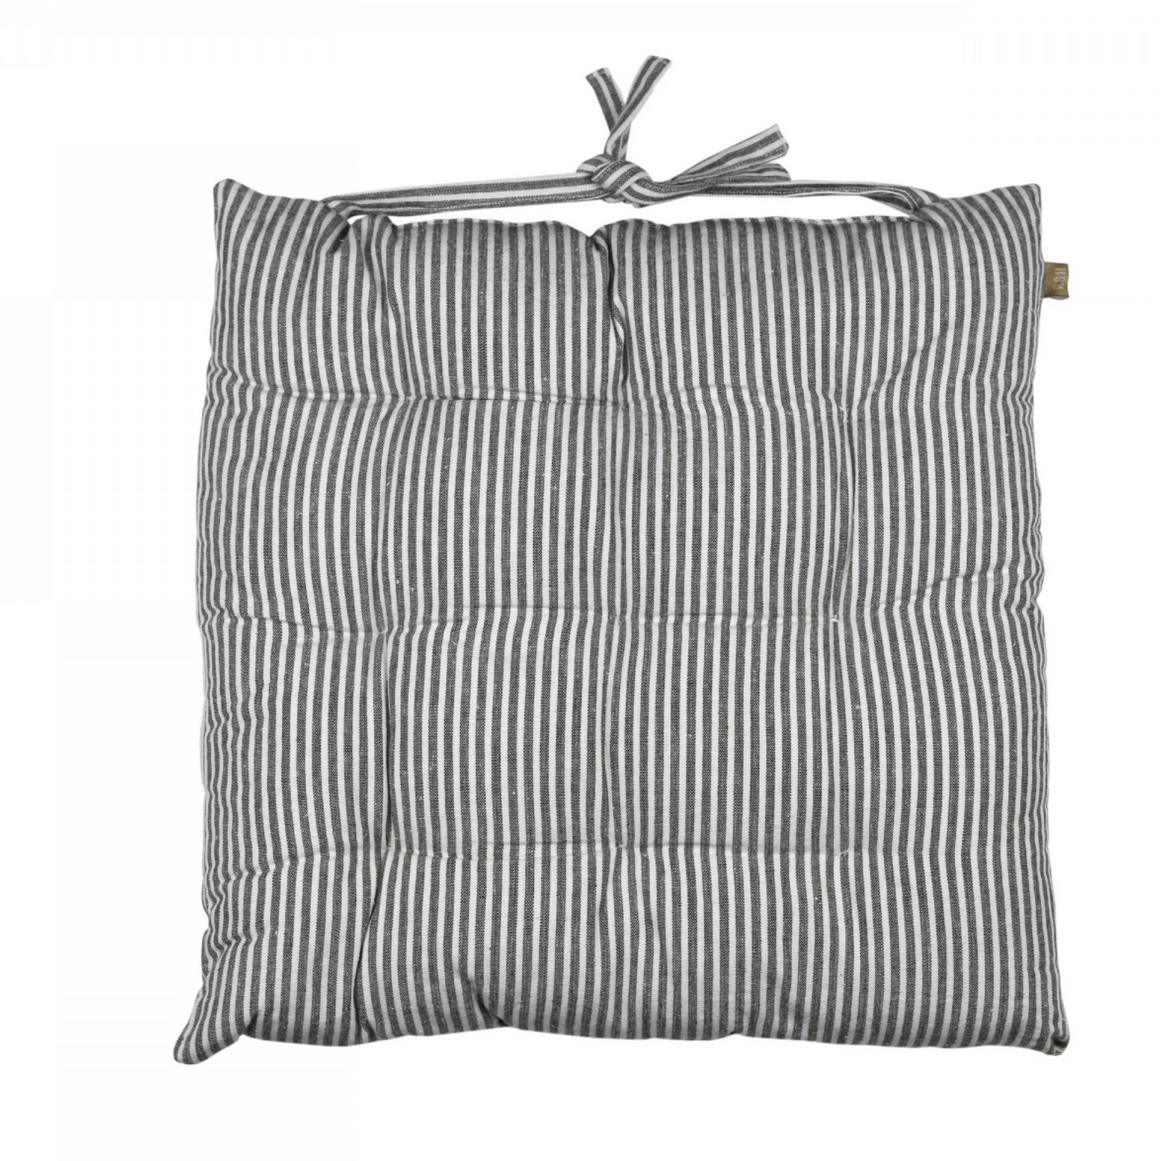 ABBEY STRIPE SEAT PAD/CUSHION - CHARCOAL